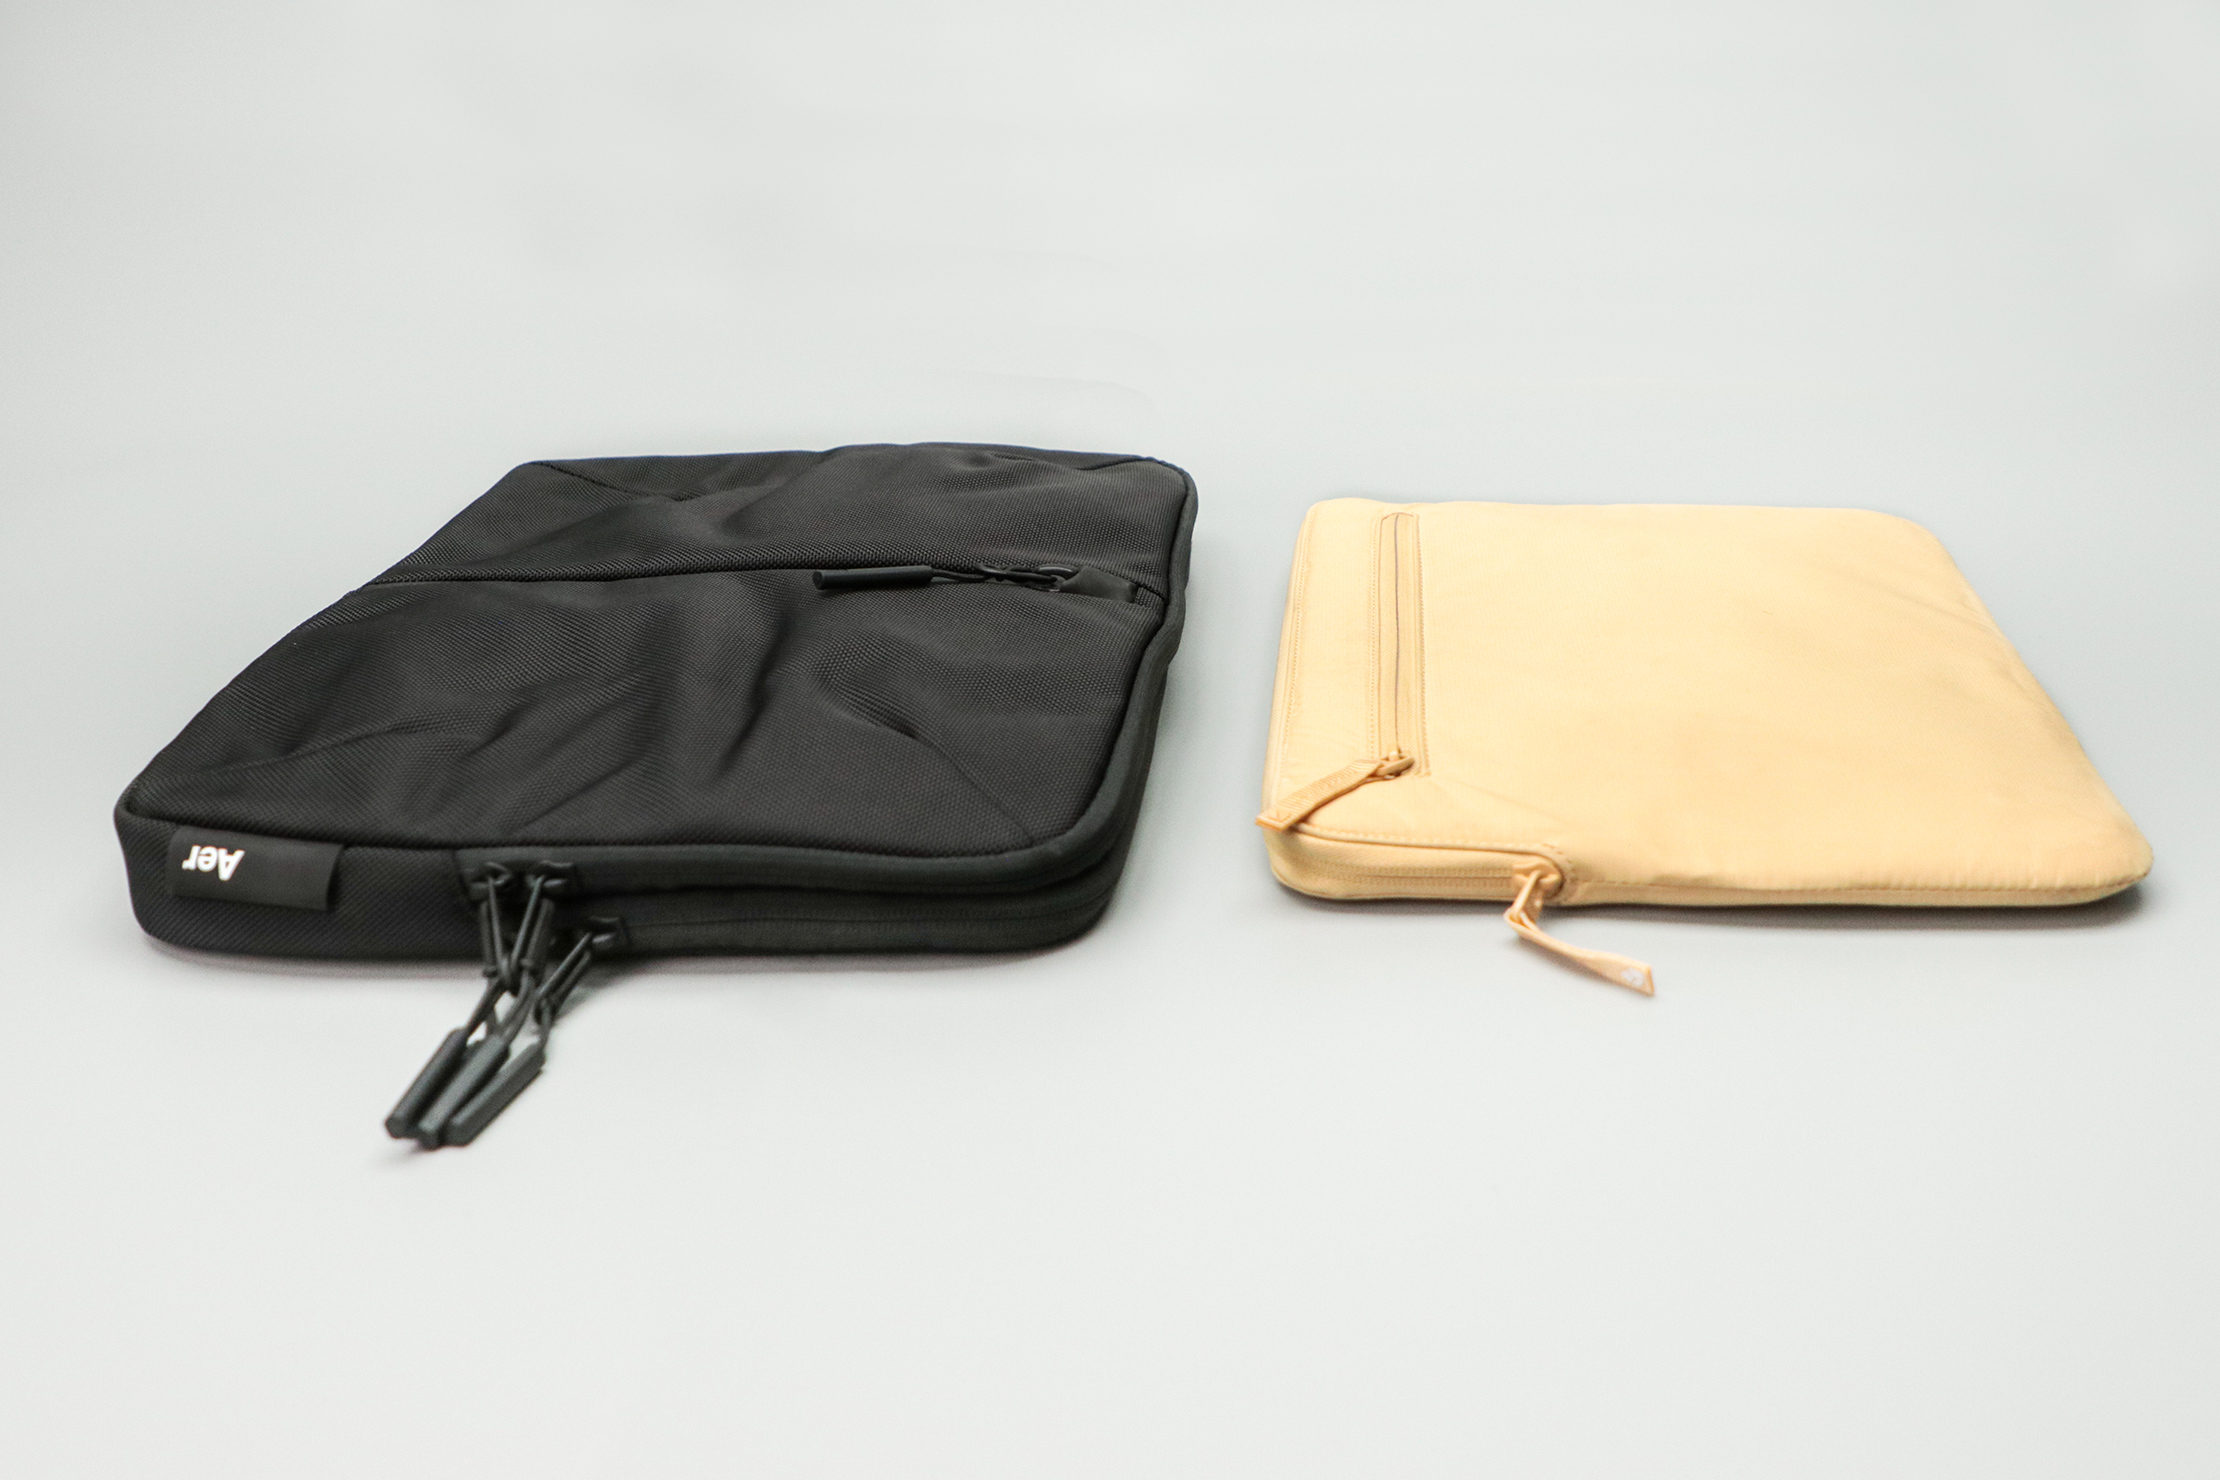 Incase Compact Sleeve with BIONIC compared to the Aer Tech Folio.